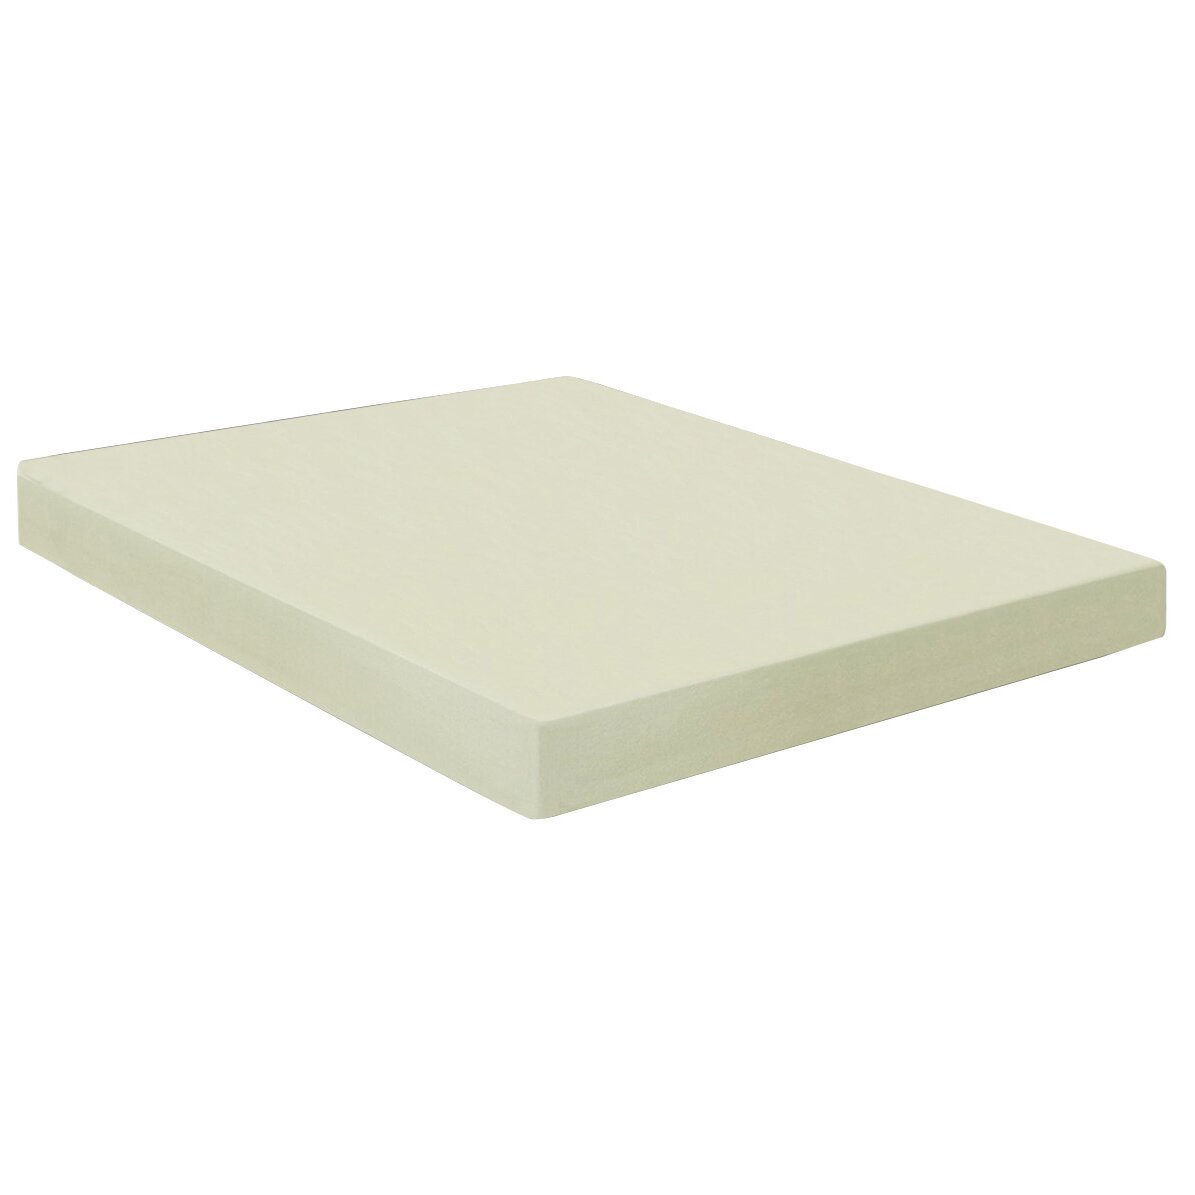 Best Price Quality Best Price Quality 6 Memory Foam Mattress Reviews Wayfair